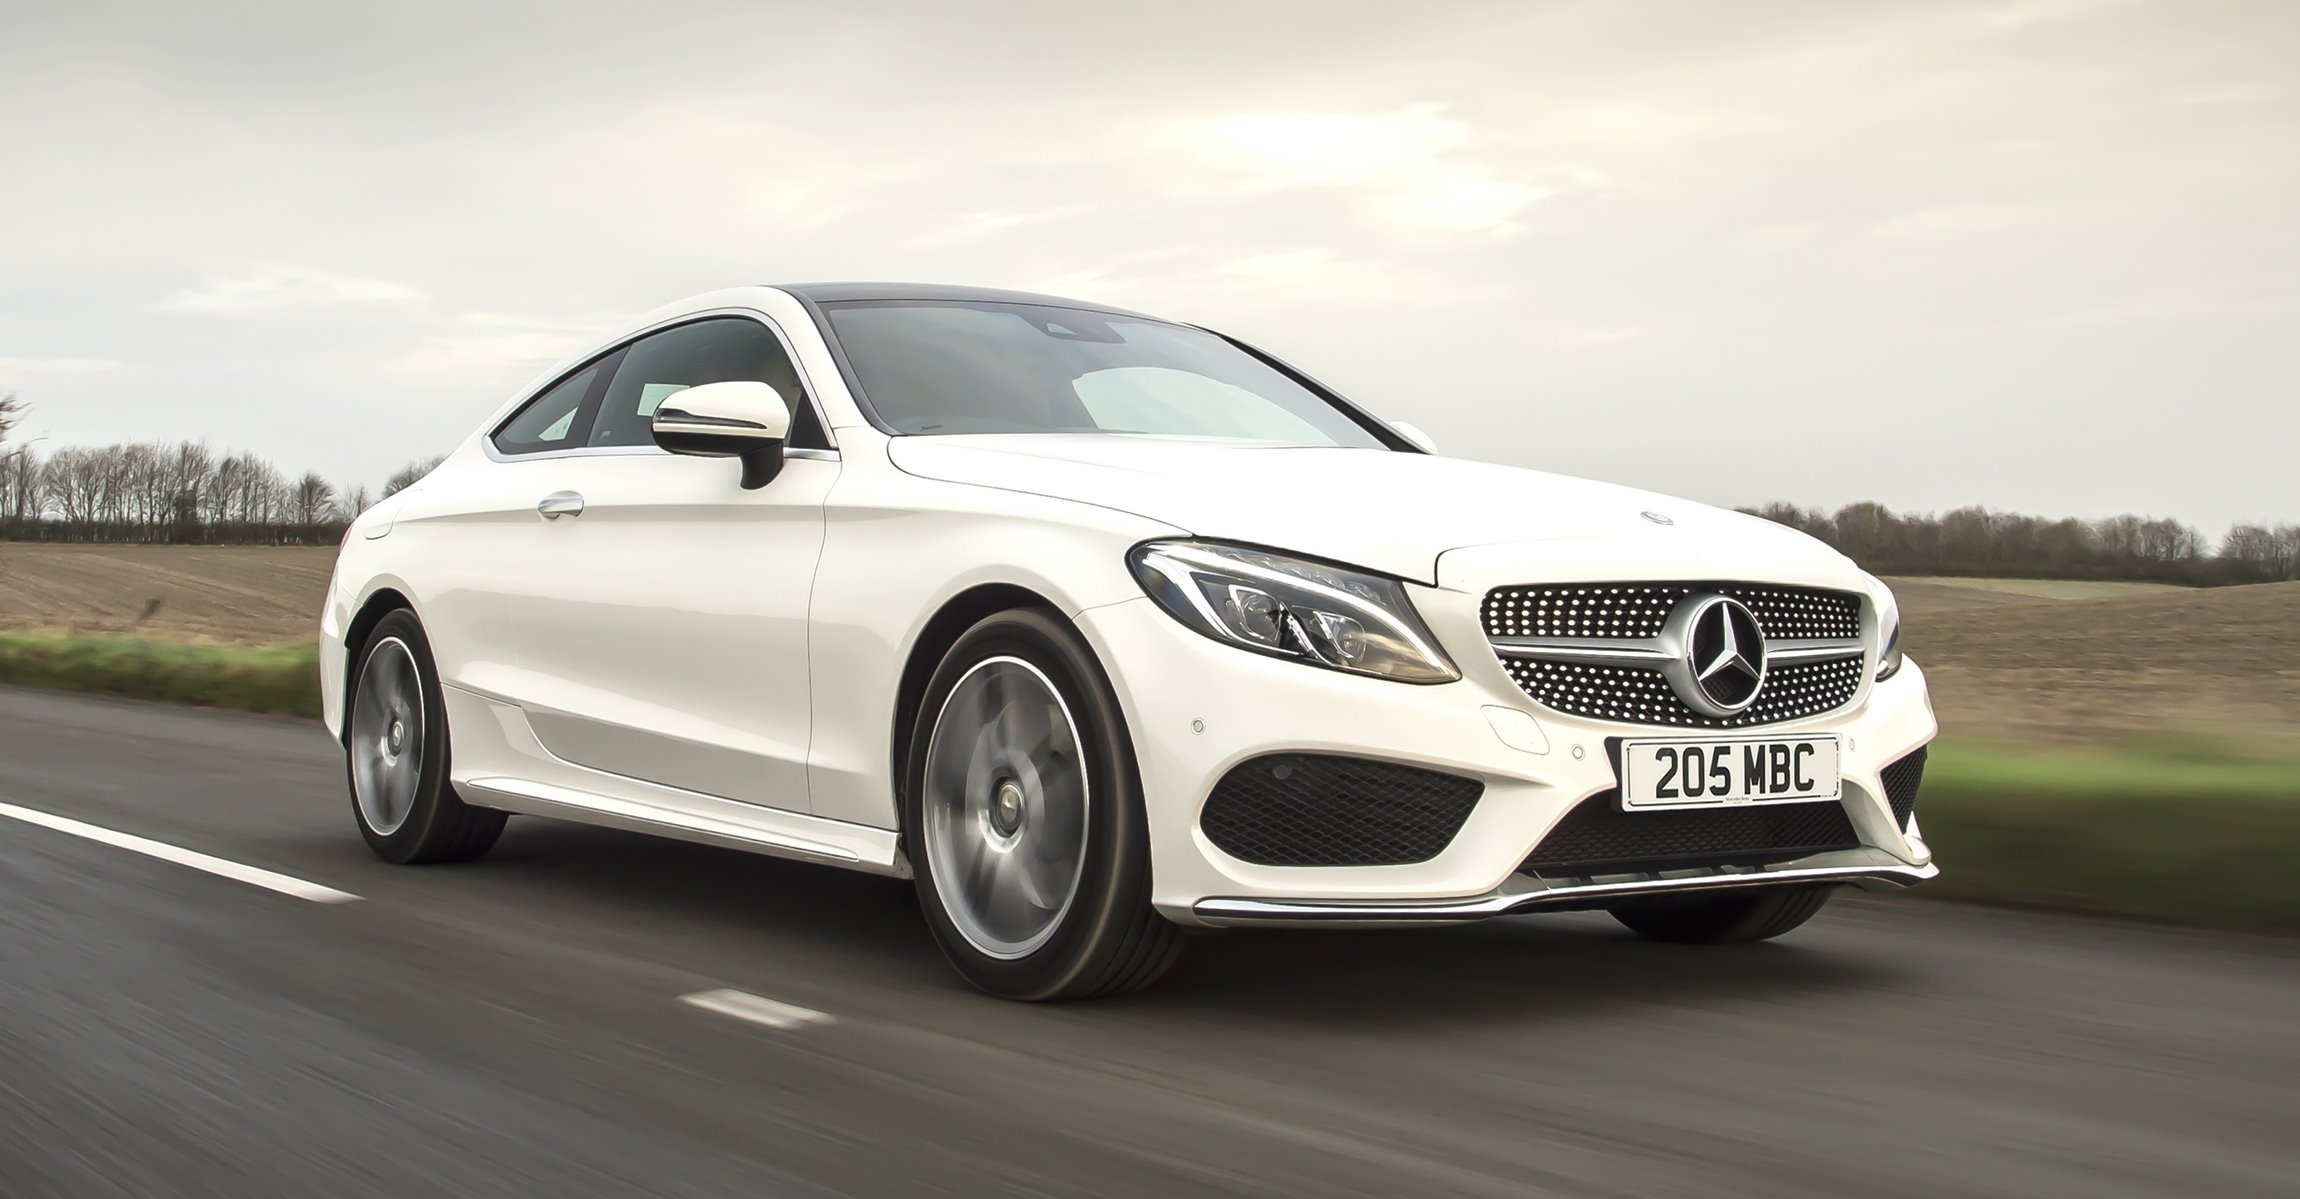 2017 Mercedes Benz C Class Coupe Posh Amg Sport Style